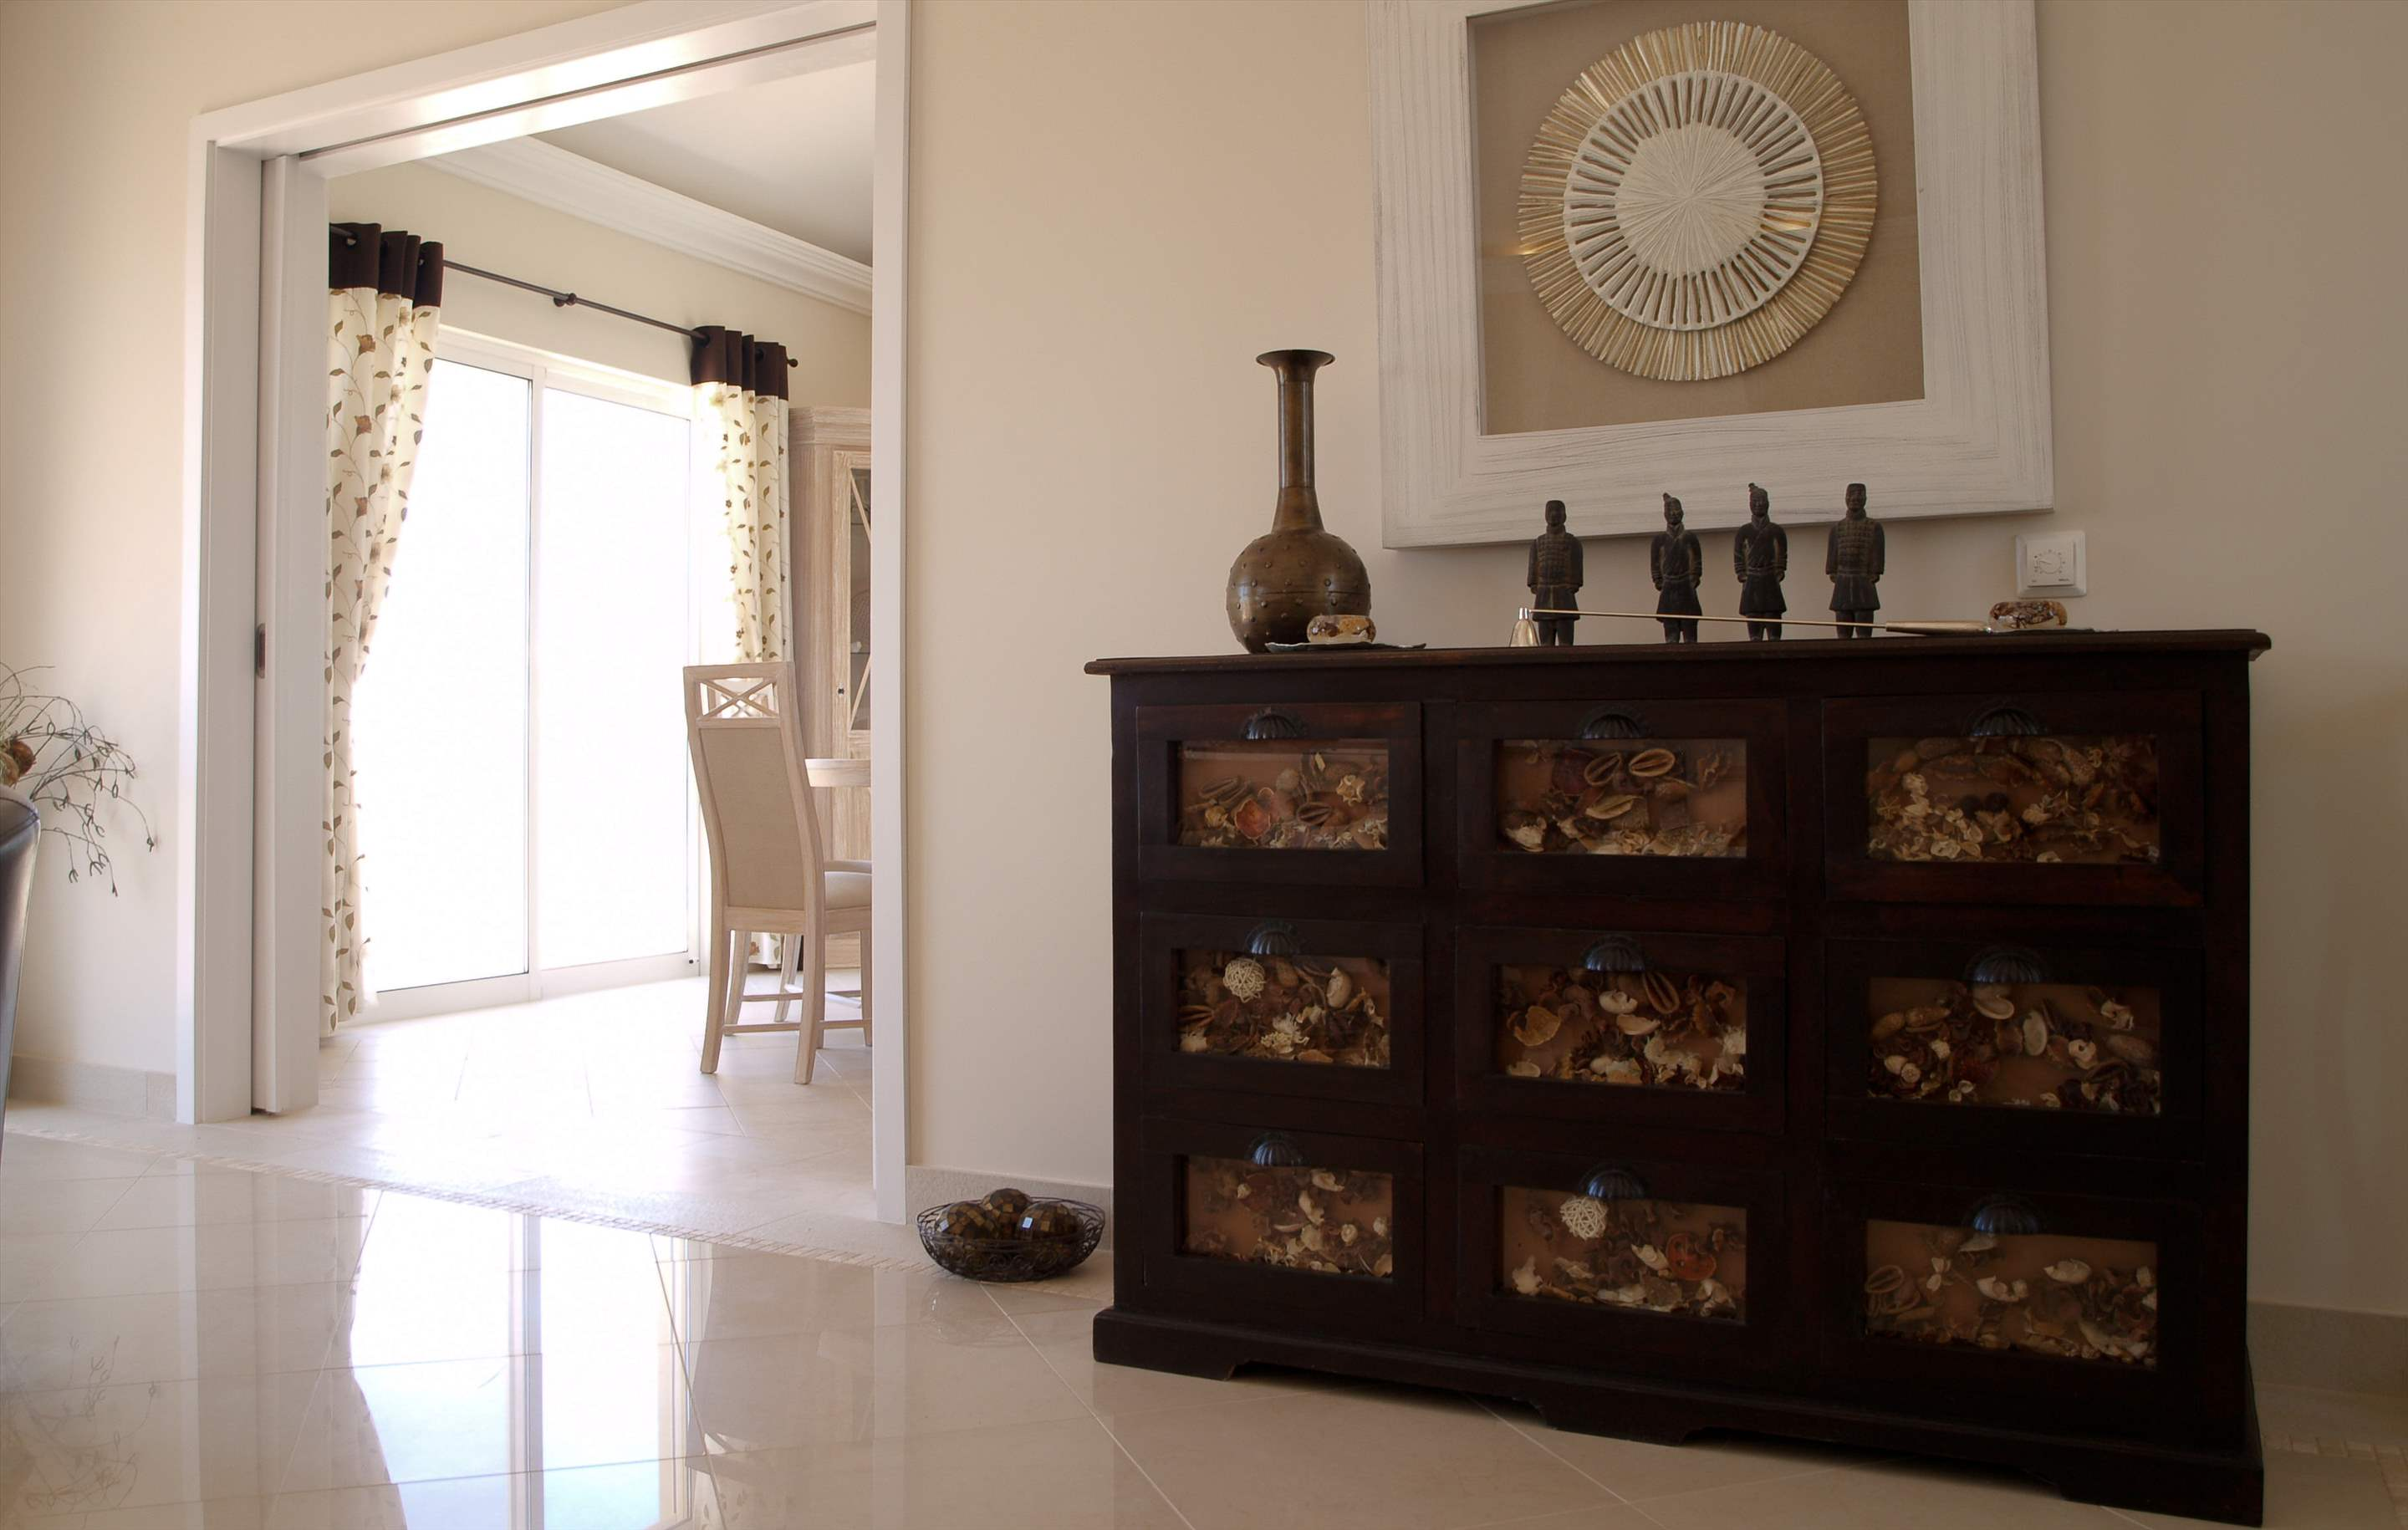 Martinhal Luxury Villa No.44, 3 bedroom villa in Martinhal Sagres, Algarve Photo #11